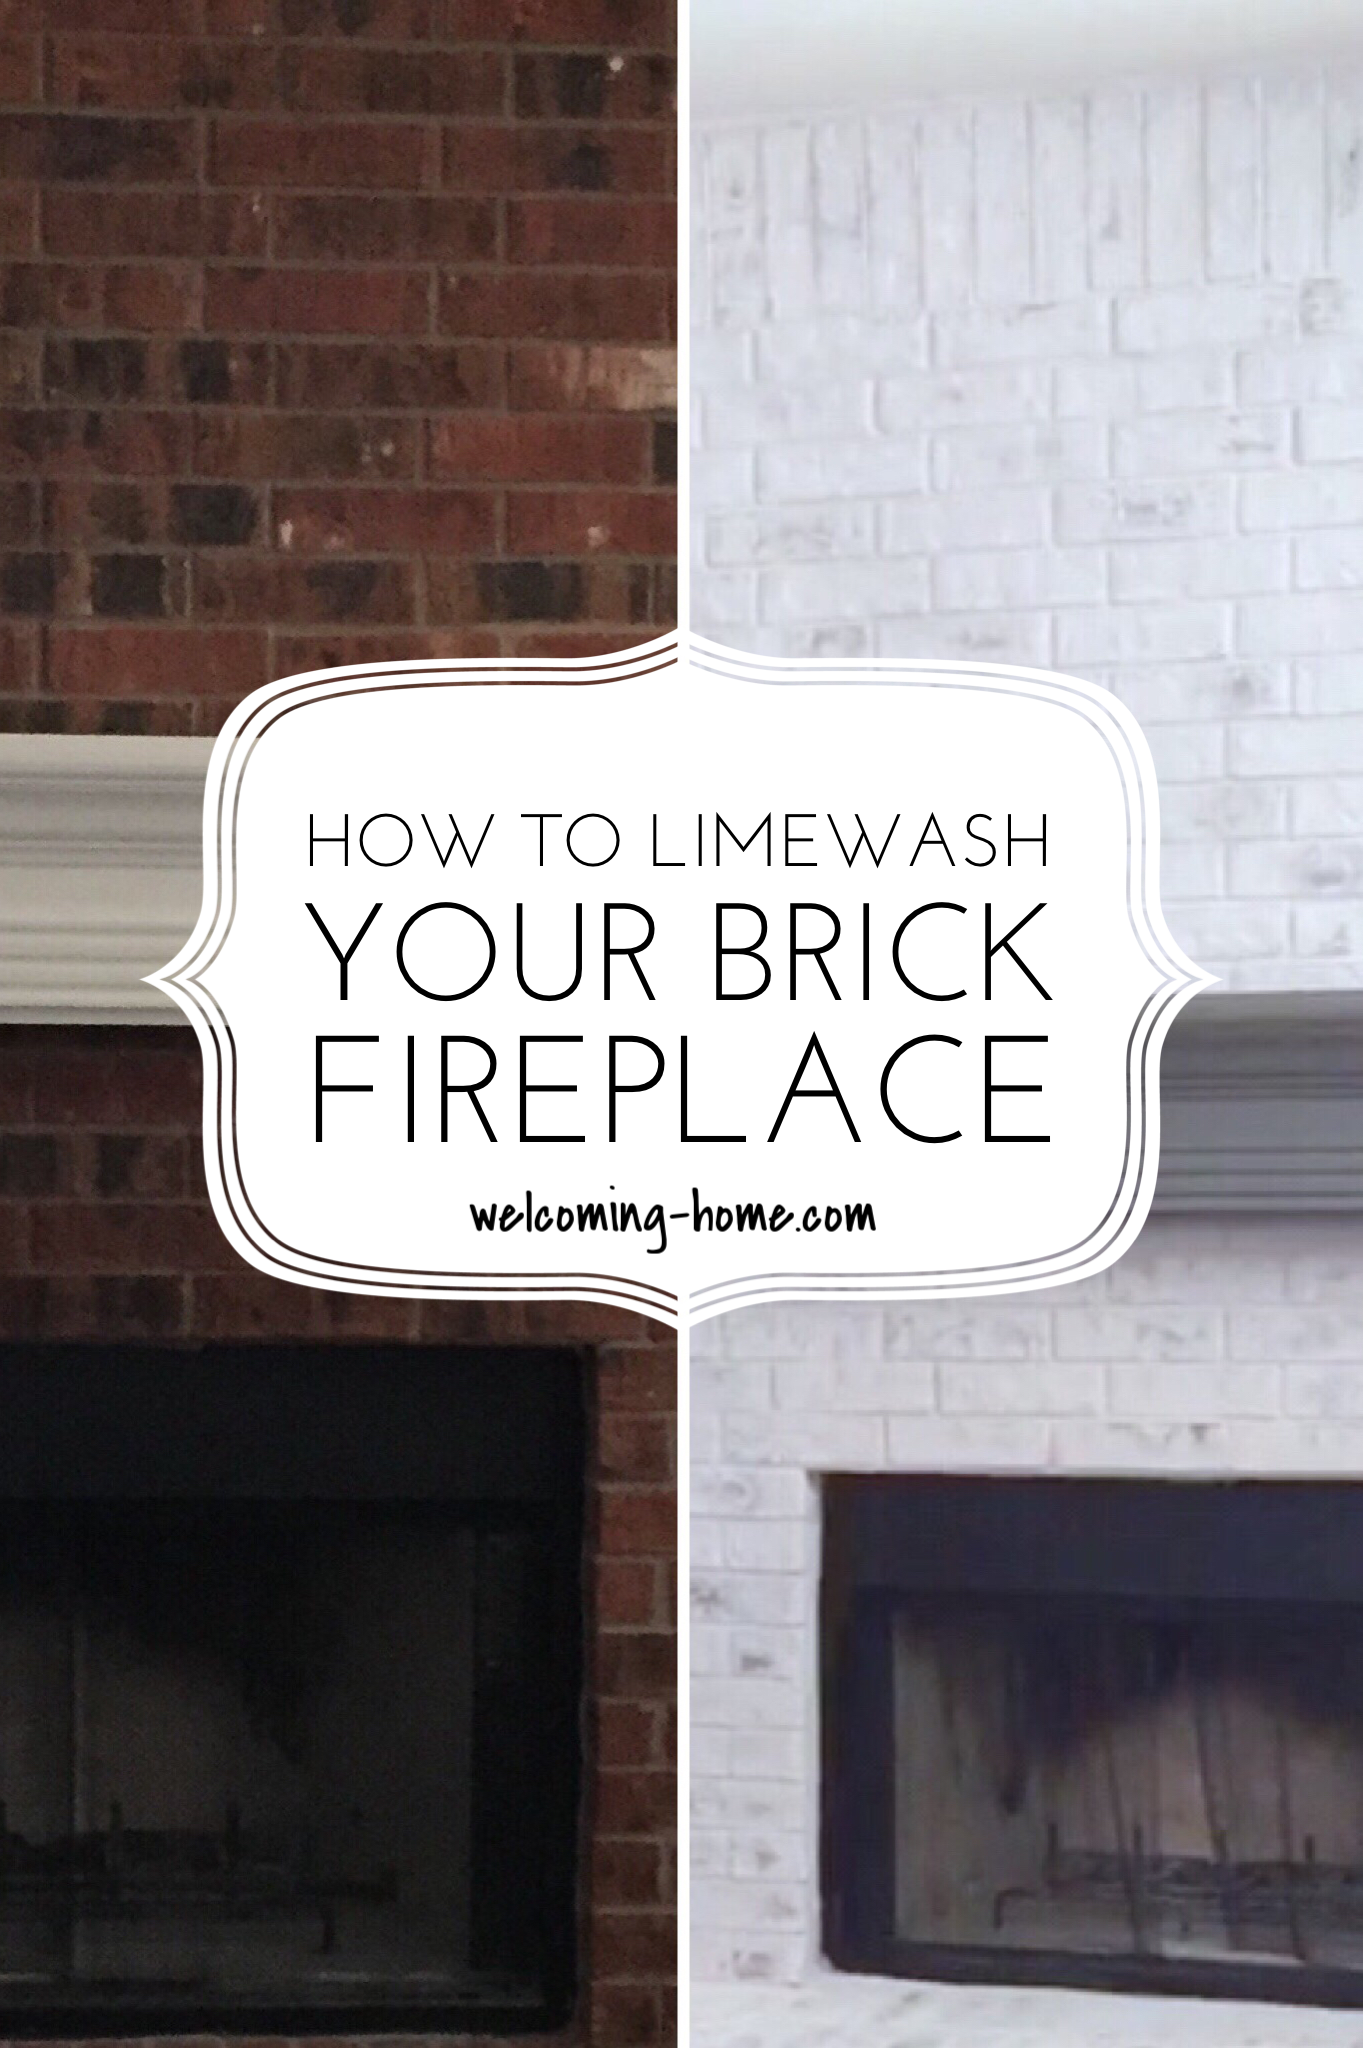 how to limewash fireplace.png